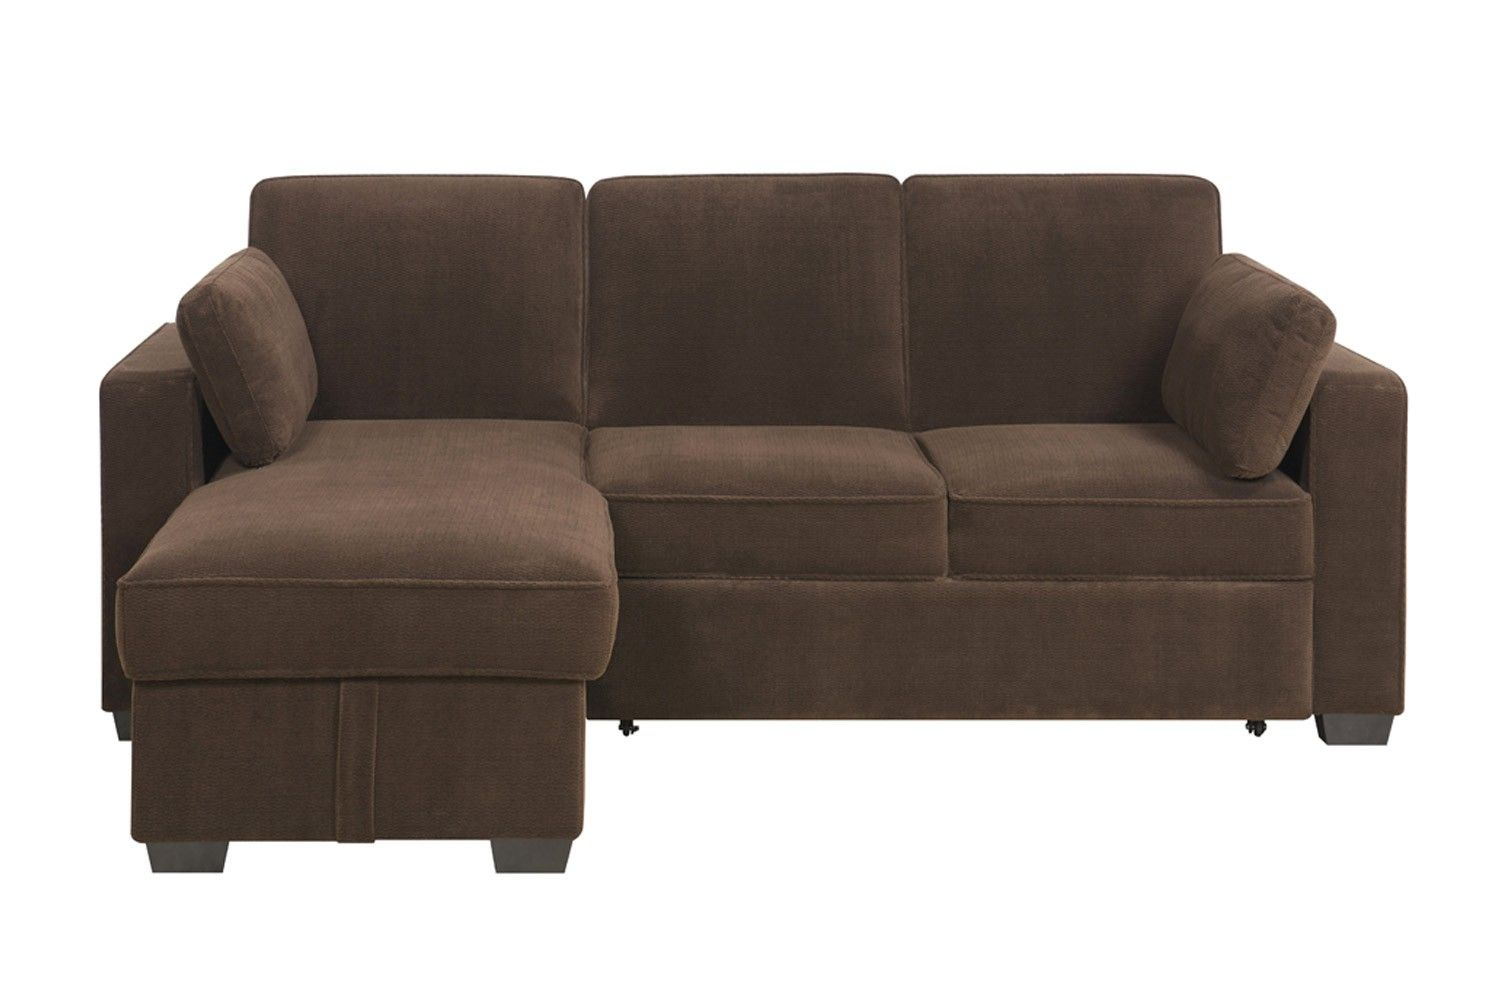 Chaela King Sofa Bed Sectional